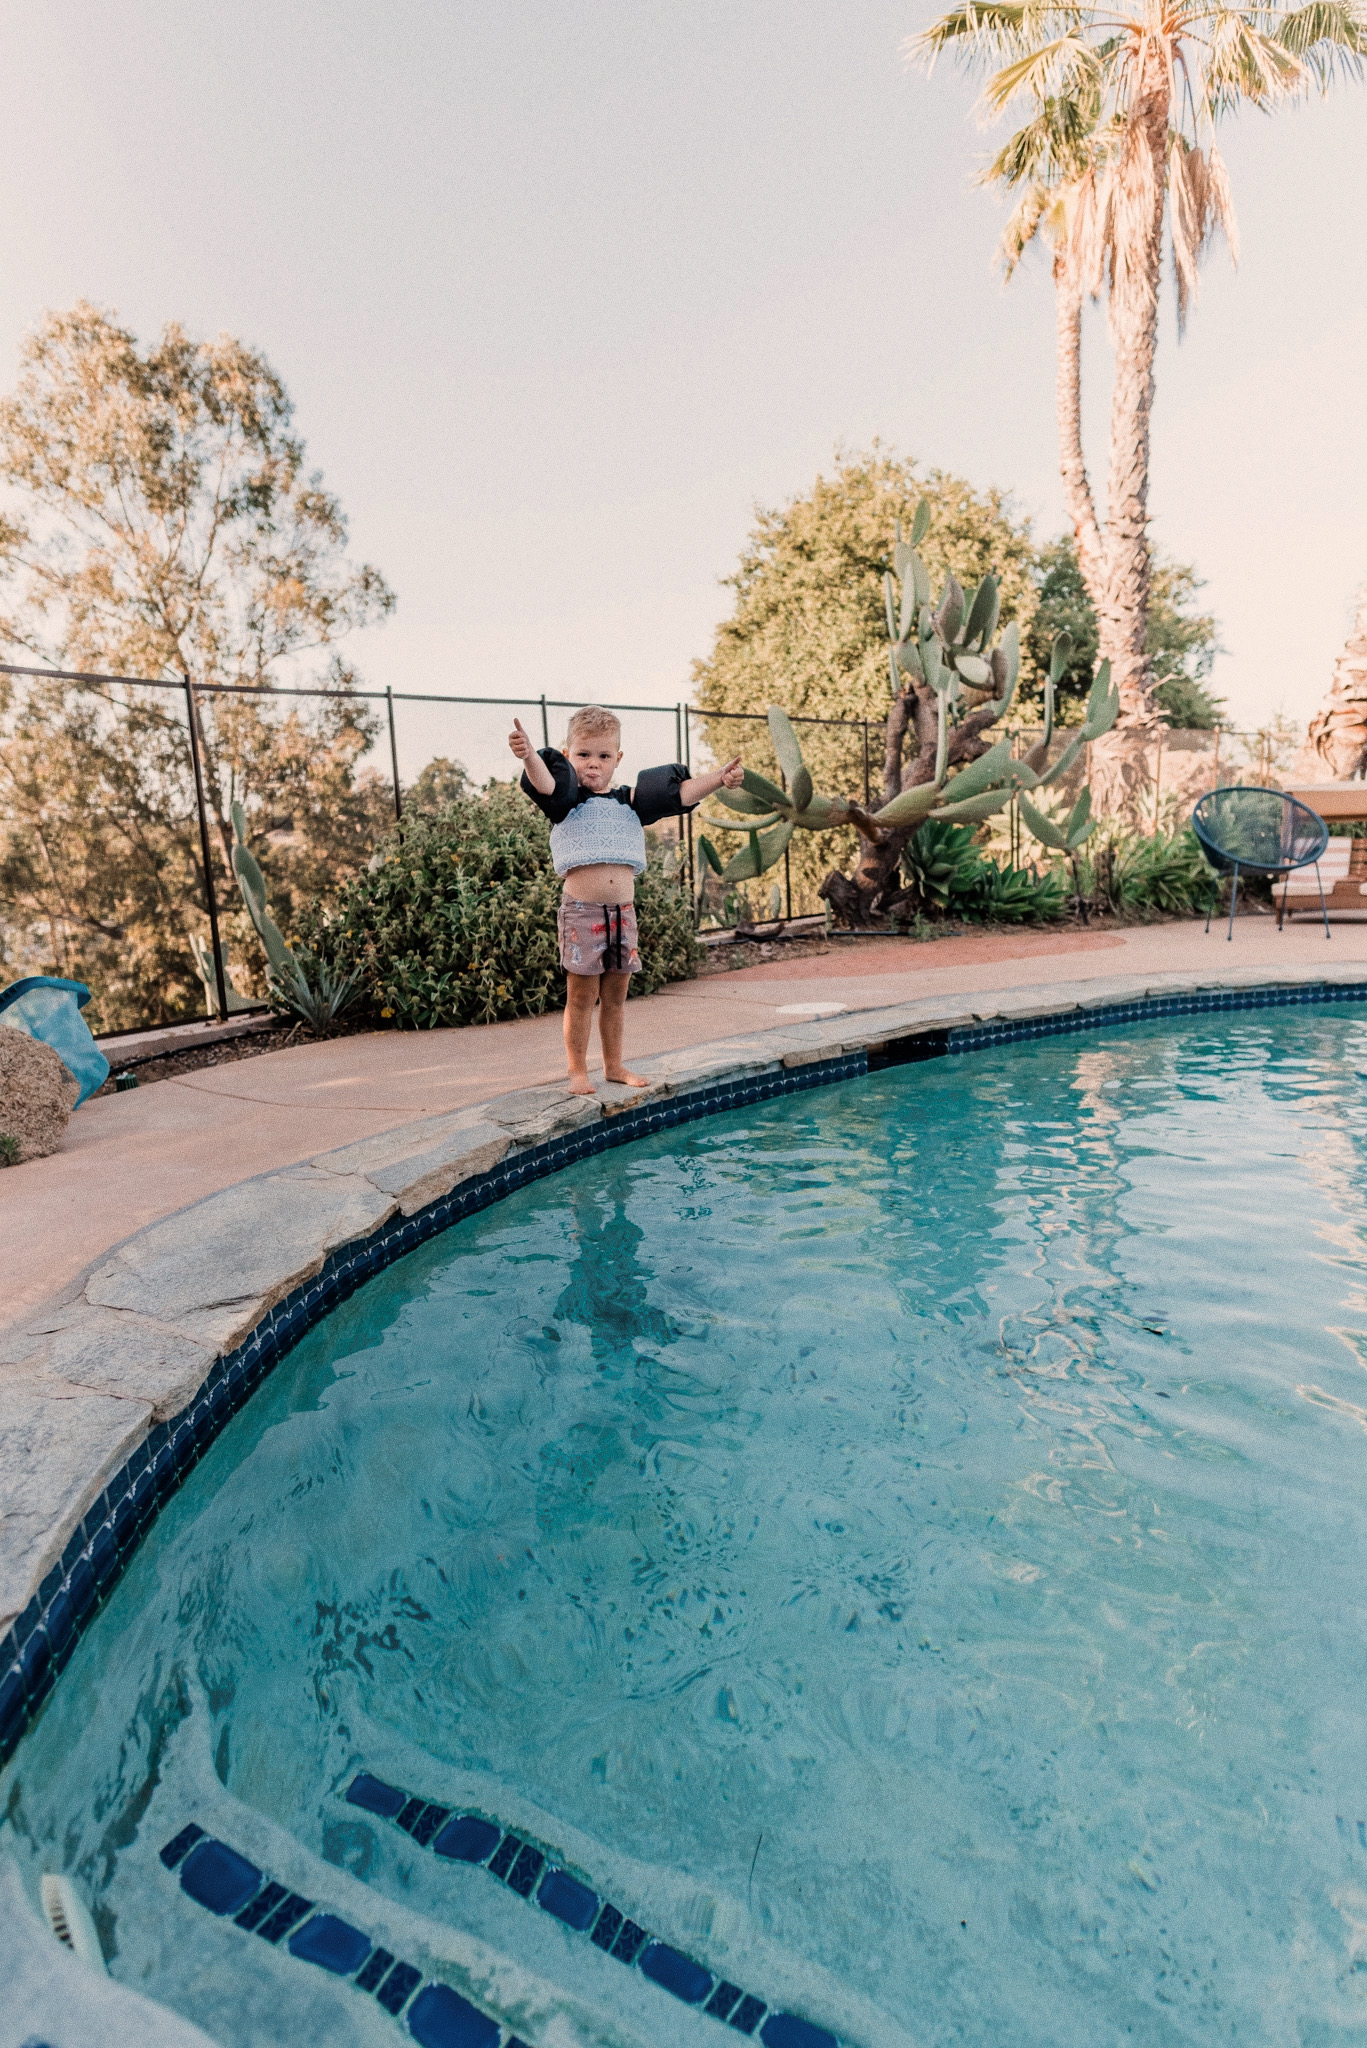 Kids Swimsuits by popular San Diego fashion blog, Navy Grace: image of a little boy giving two thumbs up as he wears a tiger print swimsuit, puddle jumper and stands on the edge of a swimming pool.